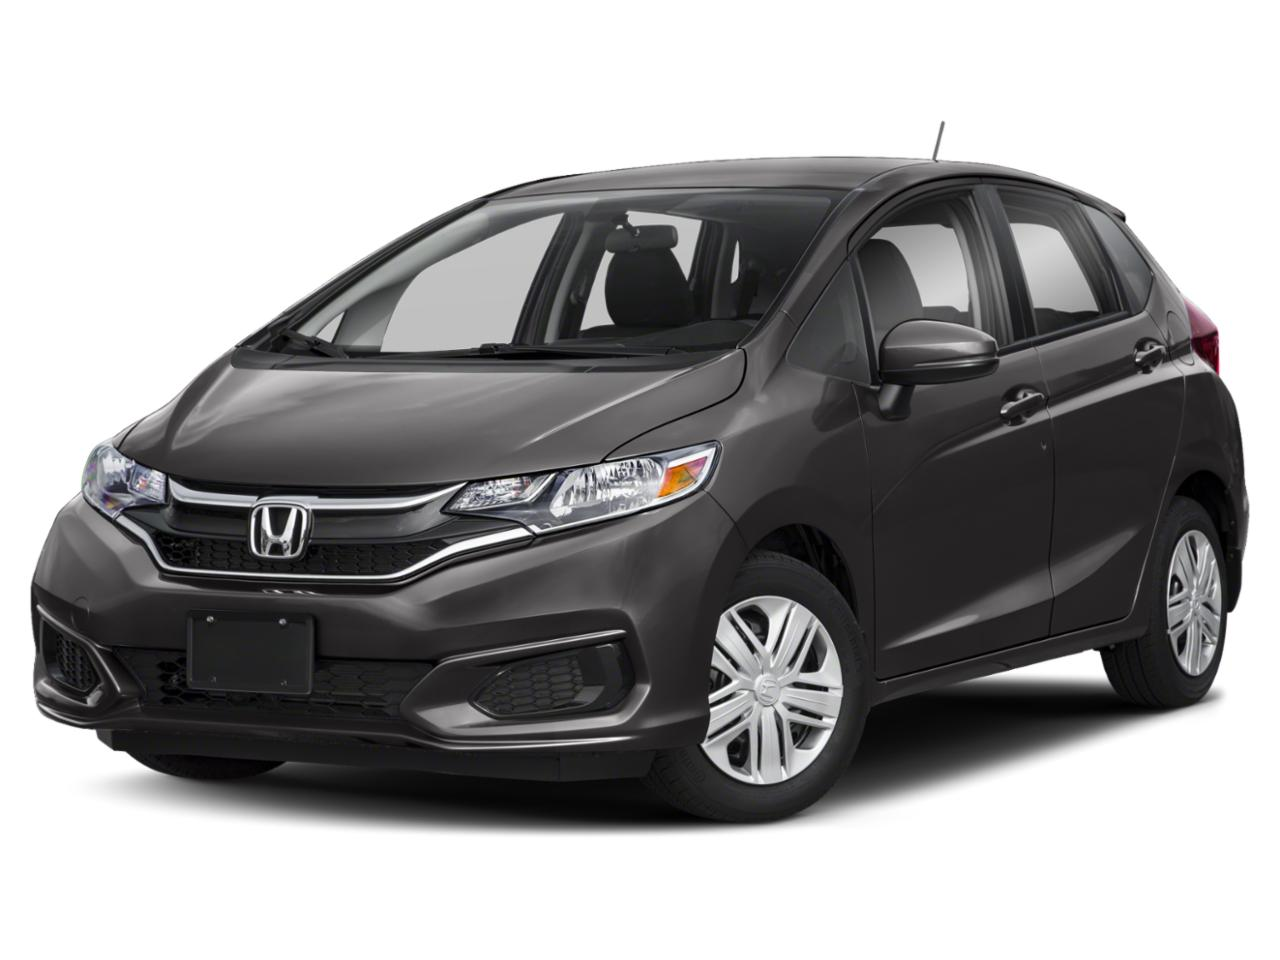 2020 Honda Fit Vehicle Photo in Muncy, PA 17756